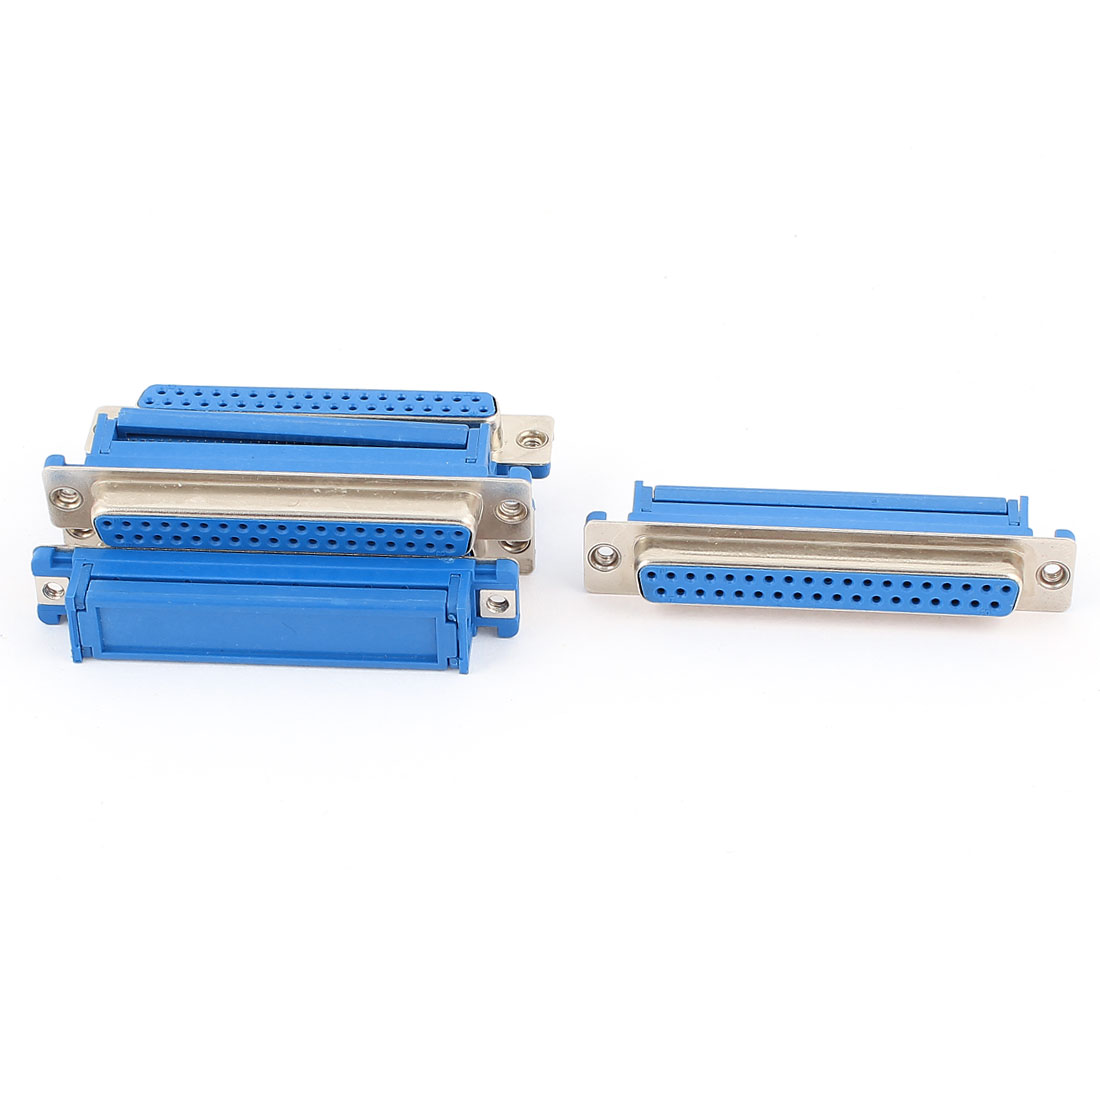 5Pcs Parallel Port 37 Pin D-SUB DB37 Female IDC Connector for Flat Ribbon Cable